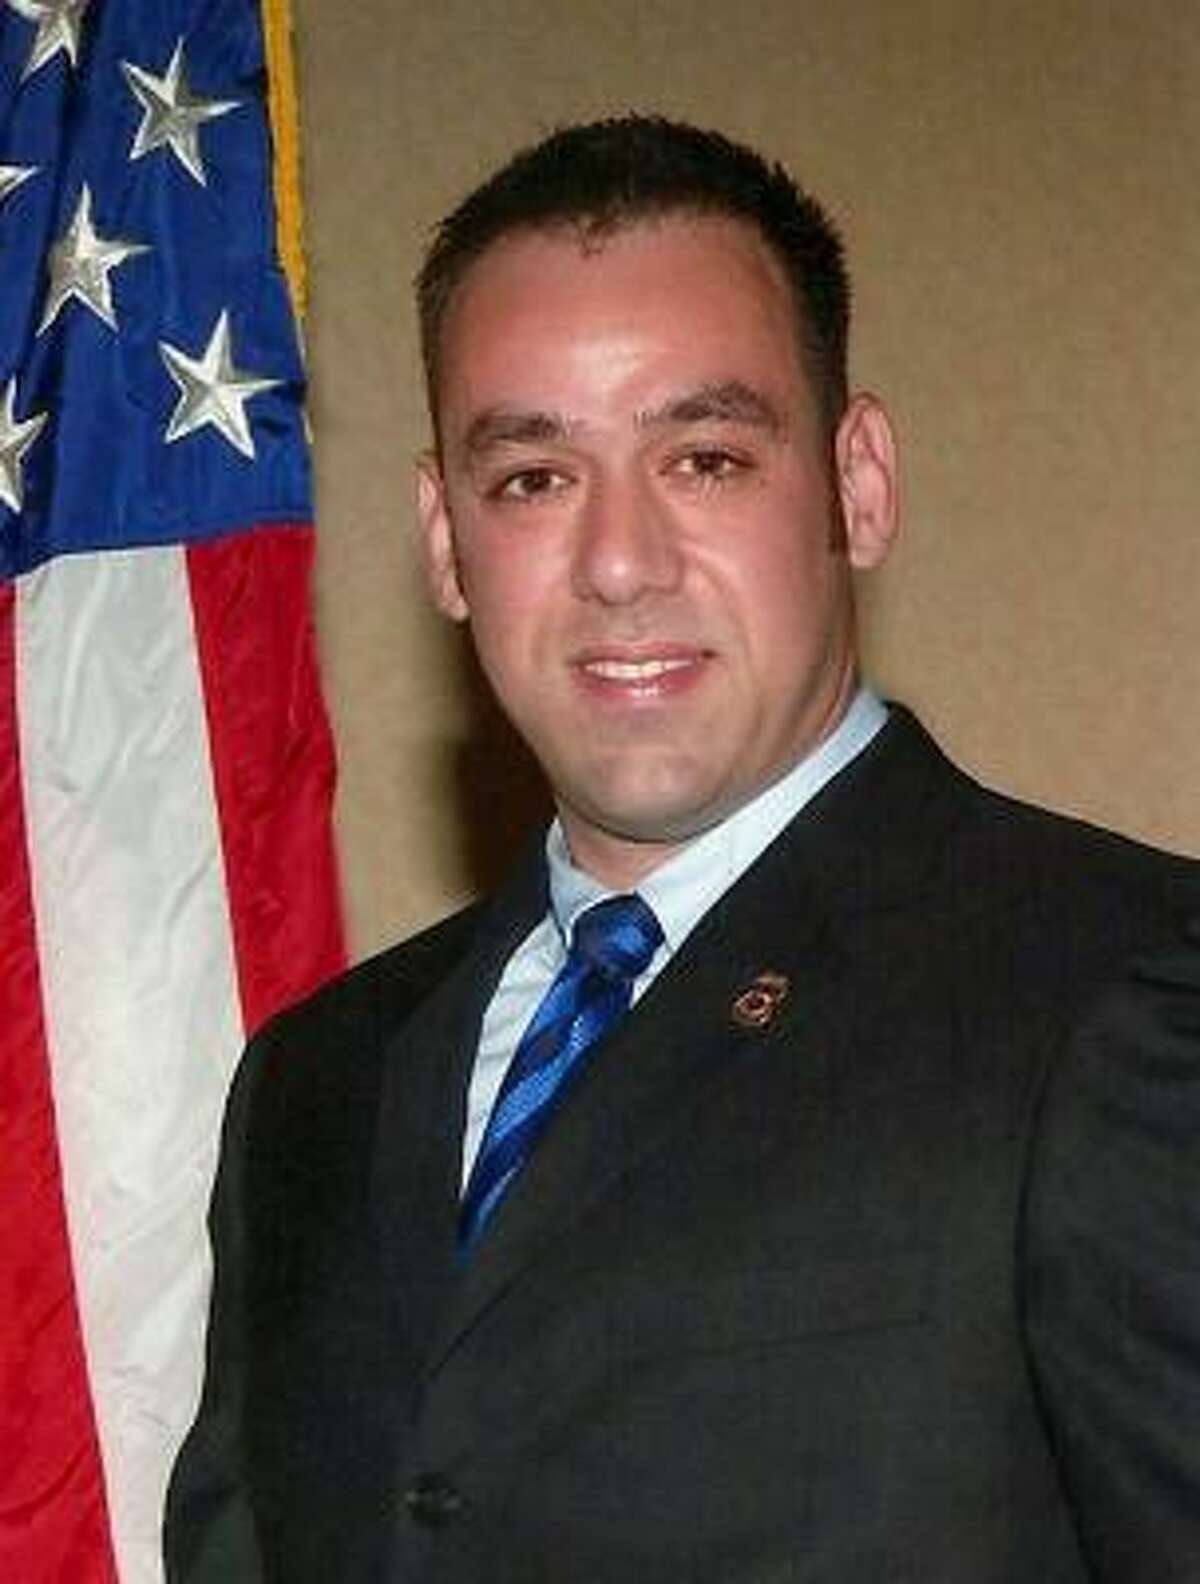 ICE Special Agent Jaime Zapata was killed in the line of duty Feb. 15 when he was ambushed while driving between Monterrey, Mexico, and Mexico City.